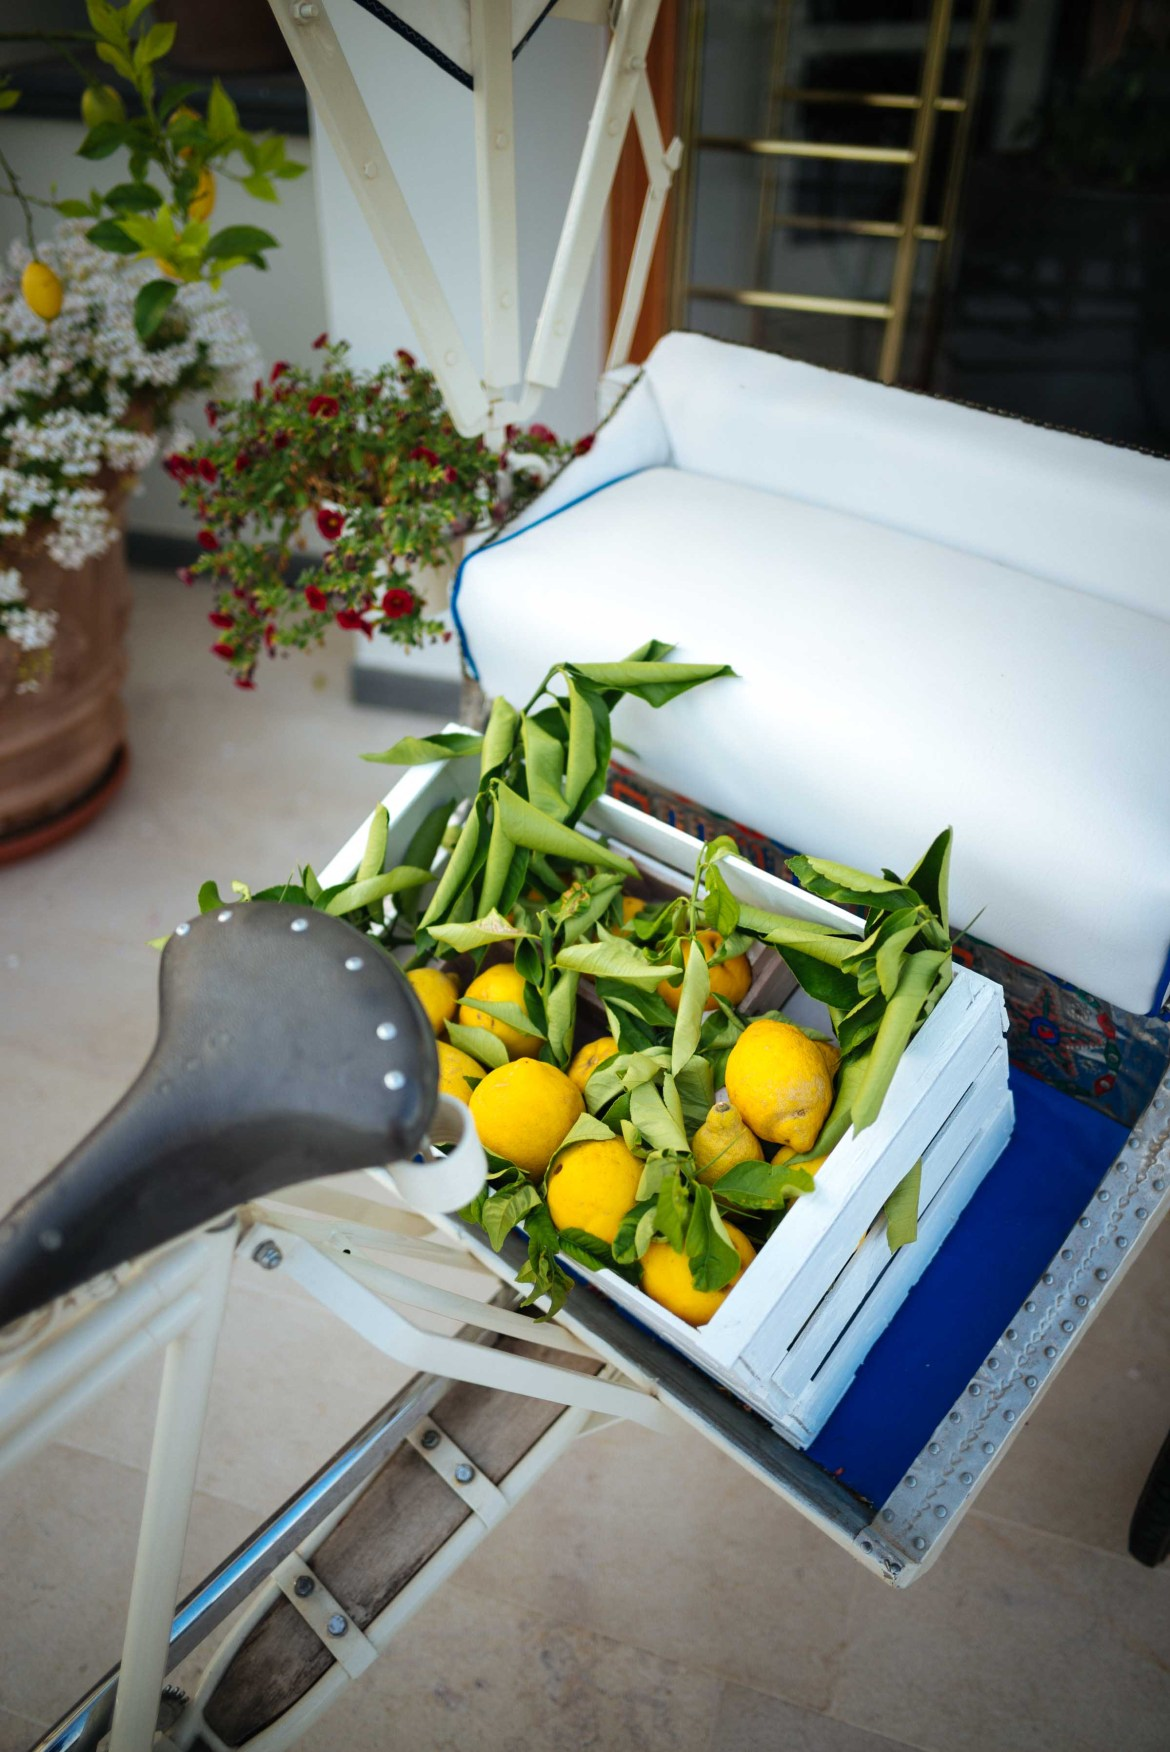 Lemons cover the Amalfi Coast in Italy. This hotel in Ischia Italy welcomes guests with a bike full of lemons.   thetasteedit.com #italy #travel #hotel